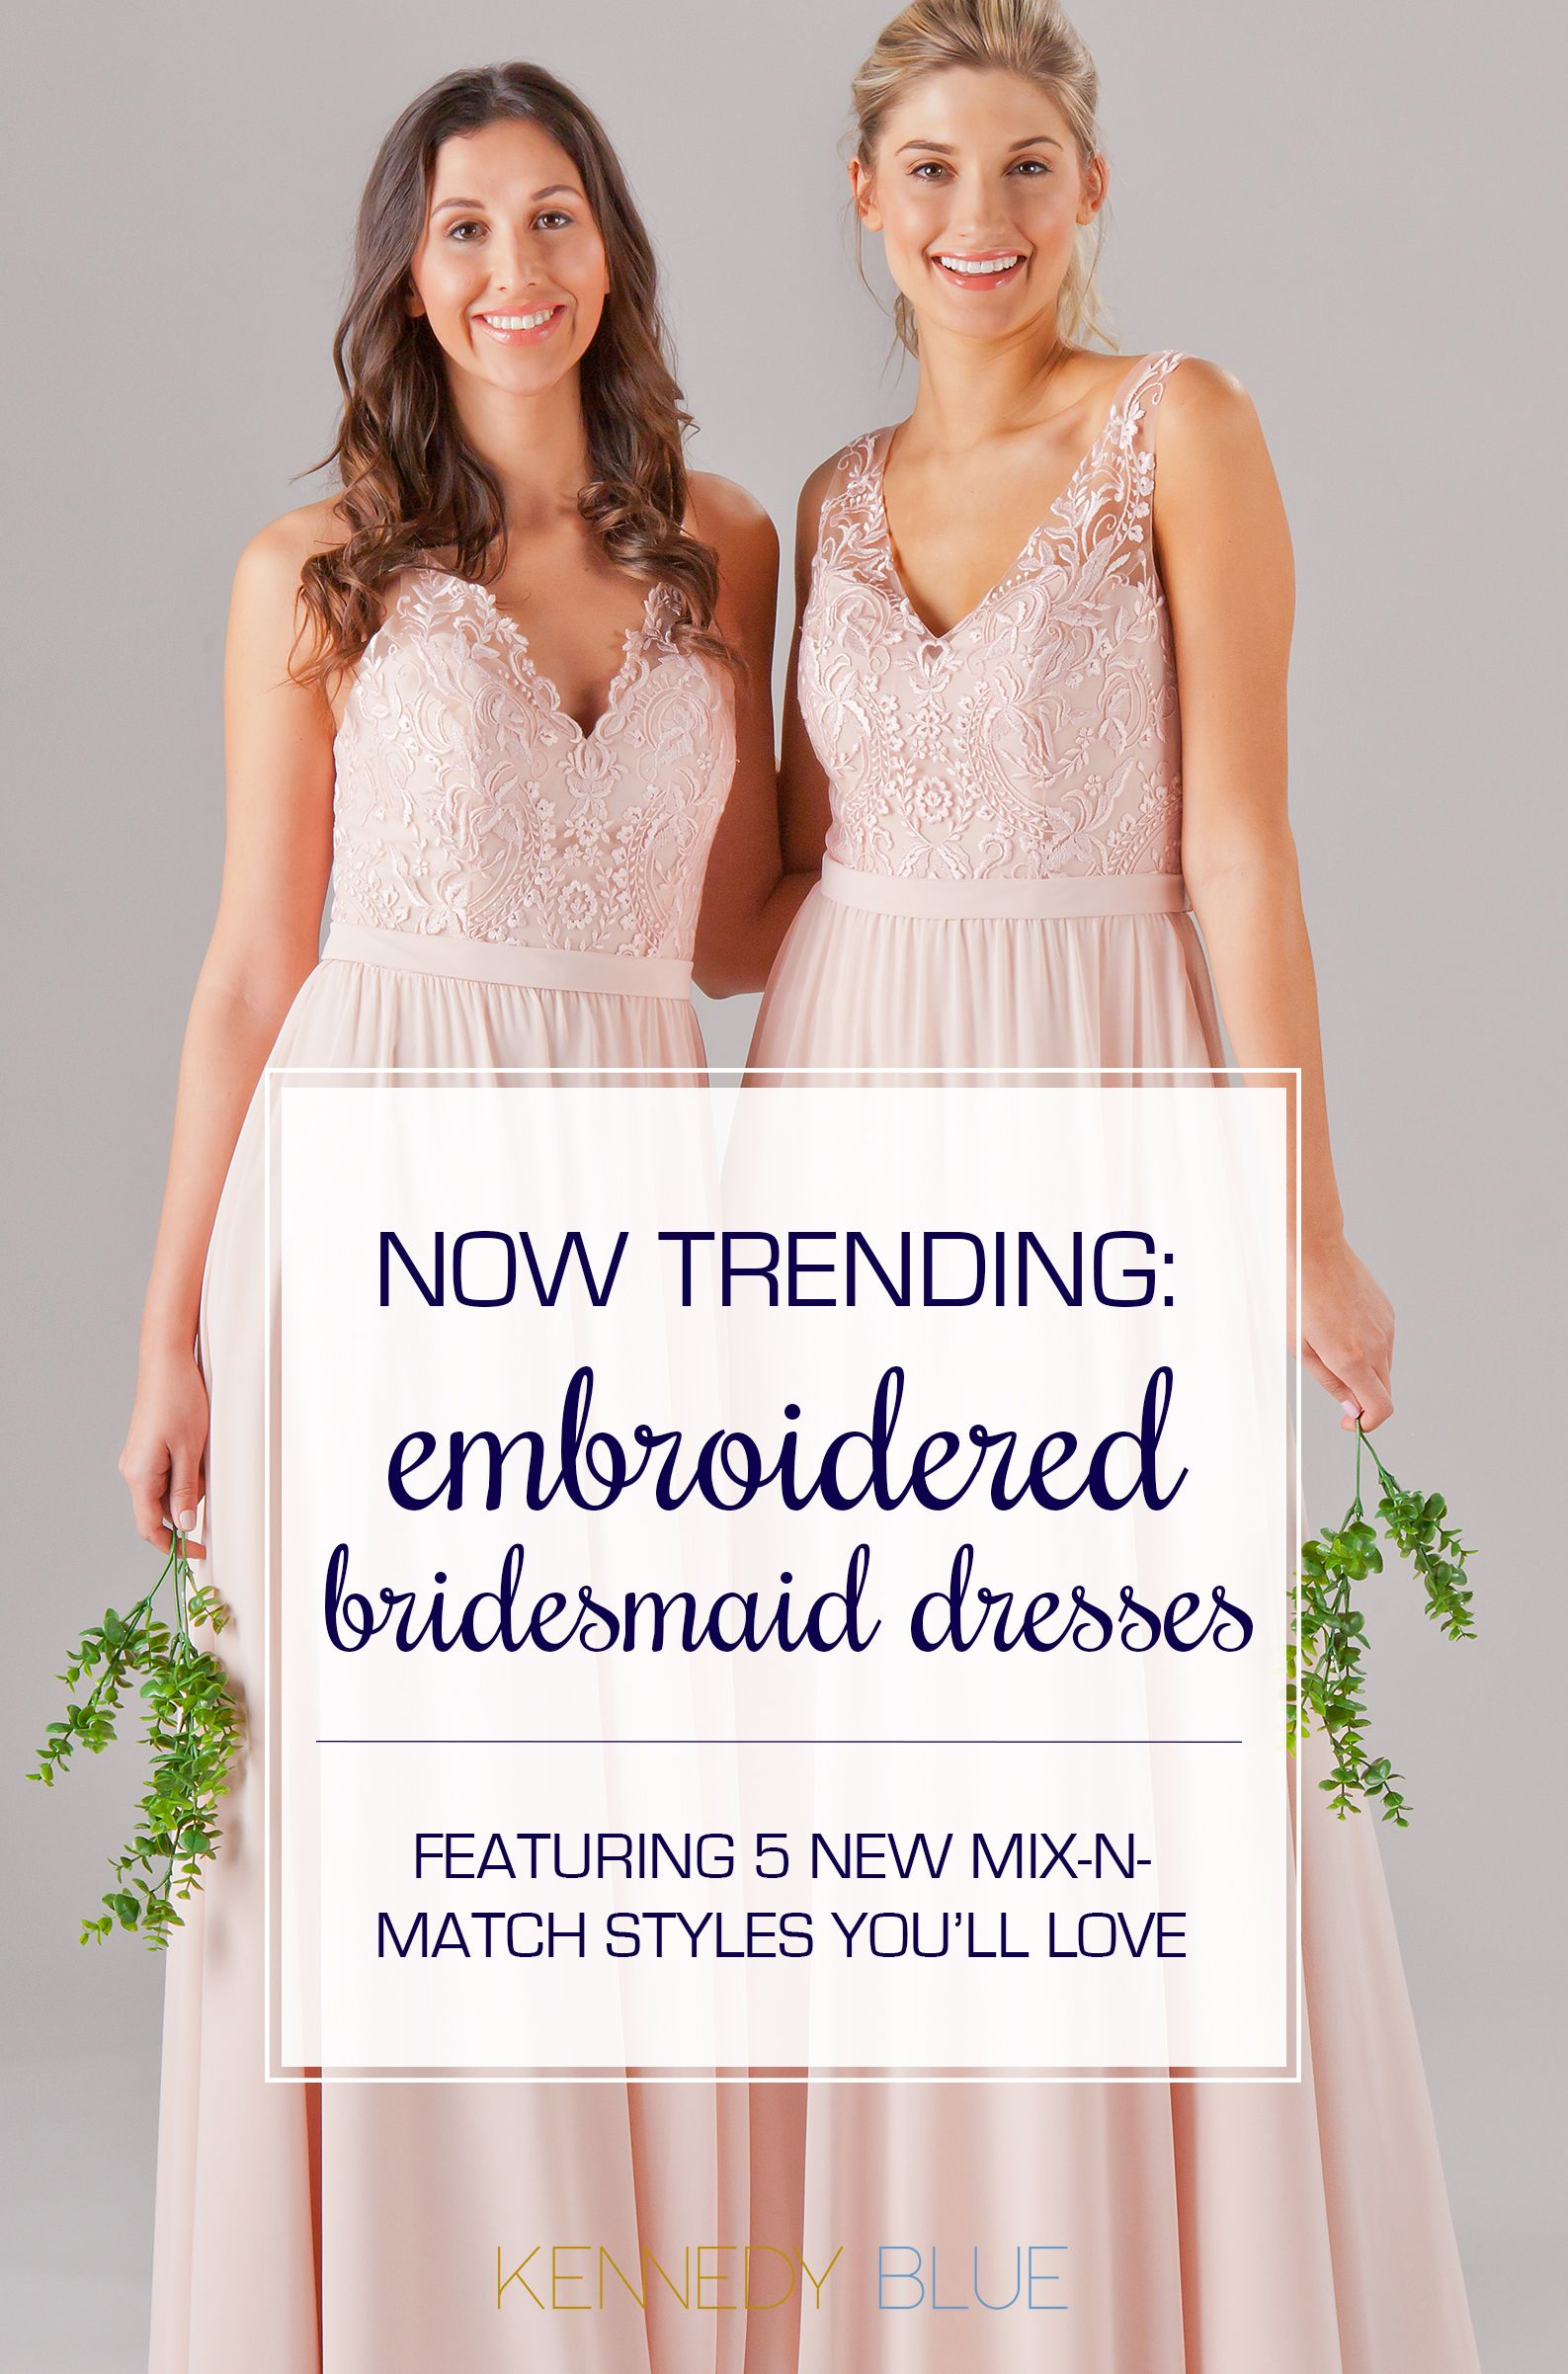 dcdb287ad24 Embroidered bridesmaid dresses are gorgeous and easy to mix and match! Find  yours at Kennedy Blue